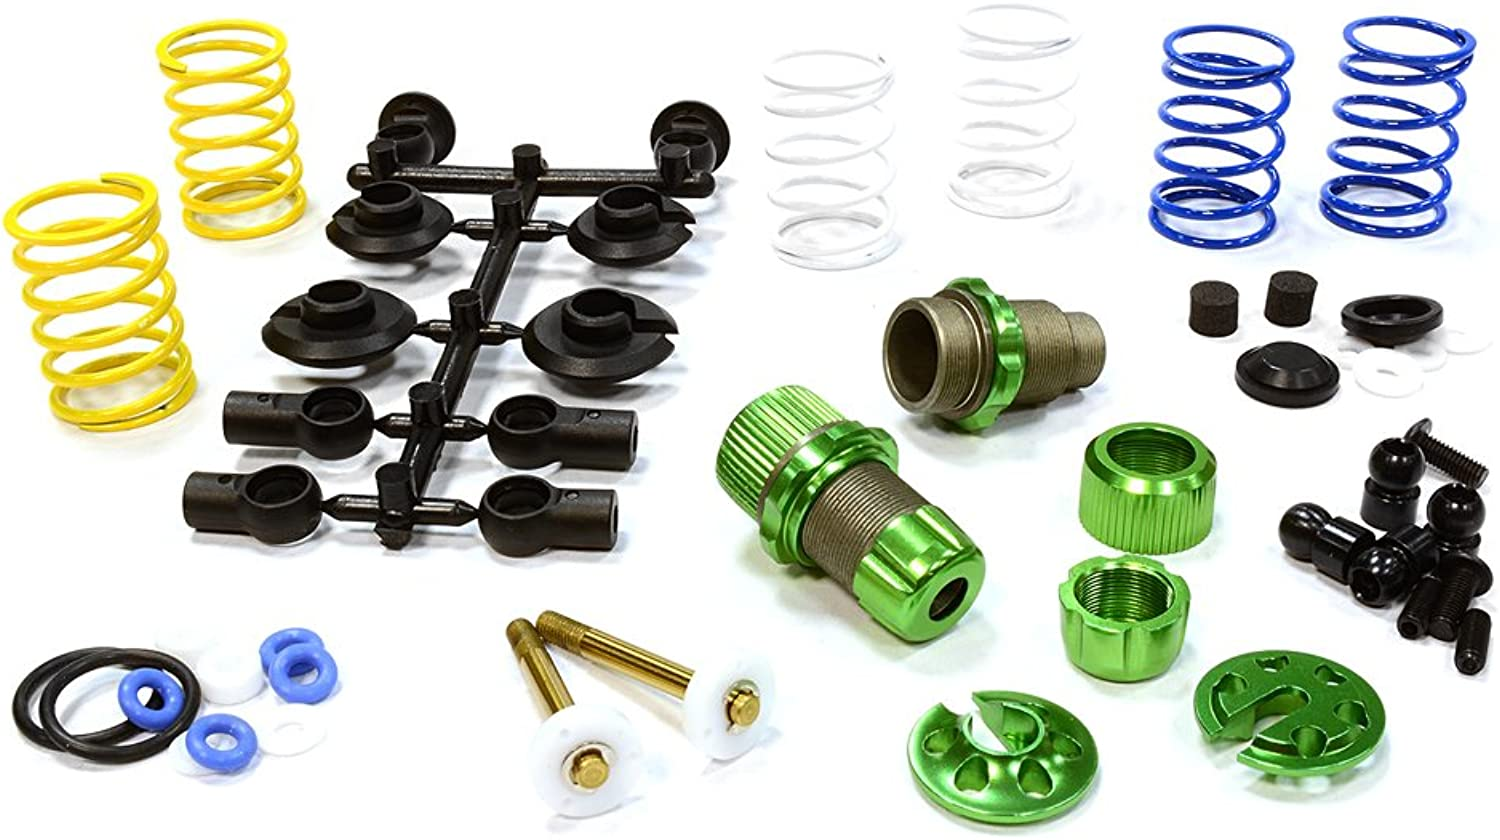 Integy RC Model Hop-ups C25910GREEN XSR11 Competition 52-55mm Racing Shock (2) for 1 10 Touring Car & Drift Car